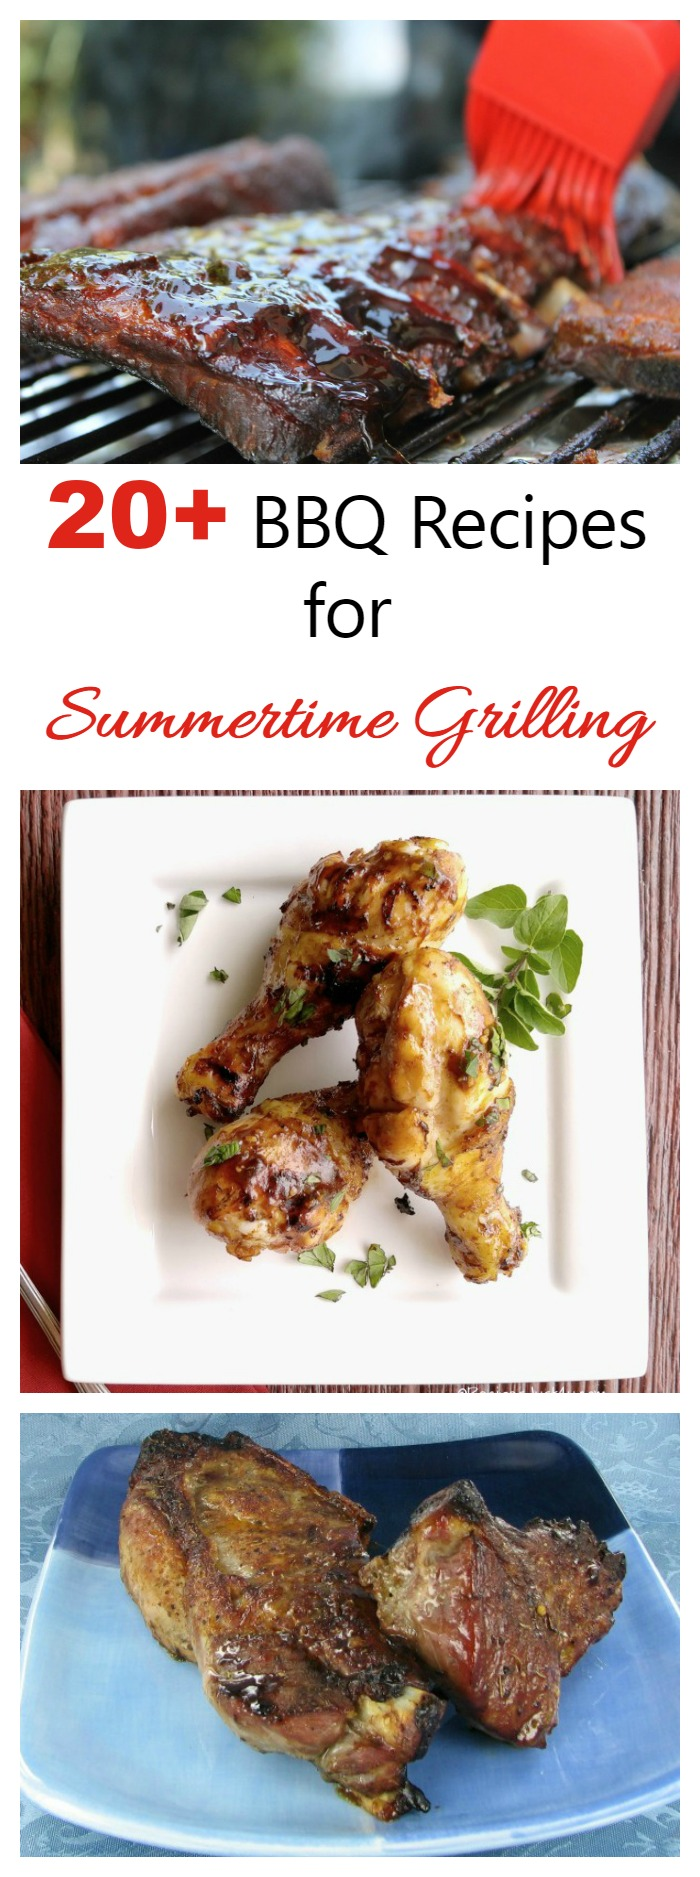 Fire up the grill! It's time for some Summer BBQ recipes